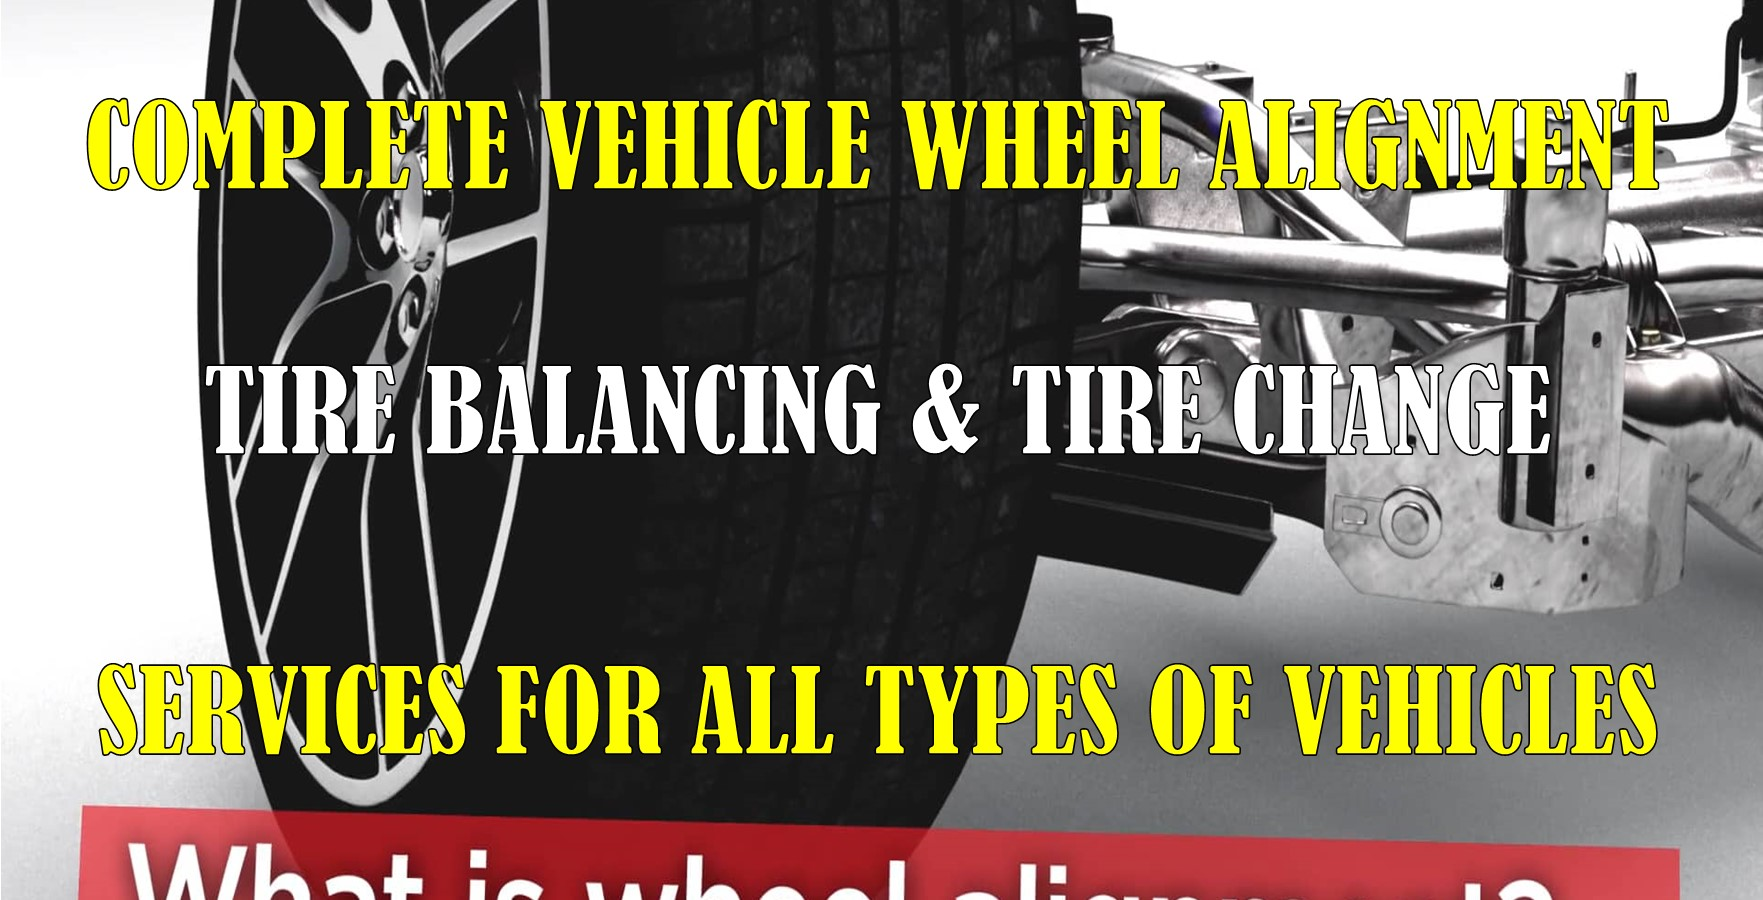 Canadian Auto Remarketing - Sales/Repairs/Tires/Napa Auto Care Provides the Following Automotive Services